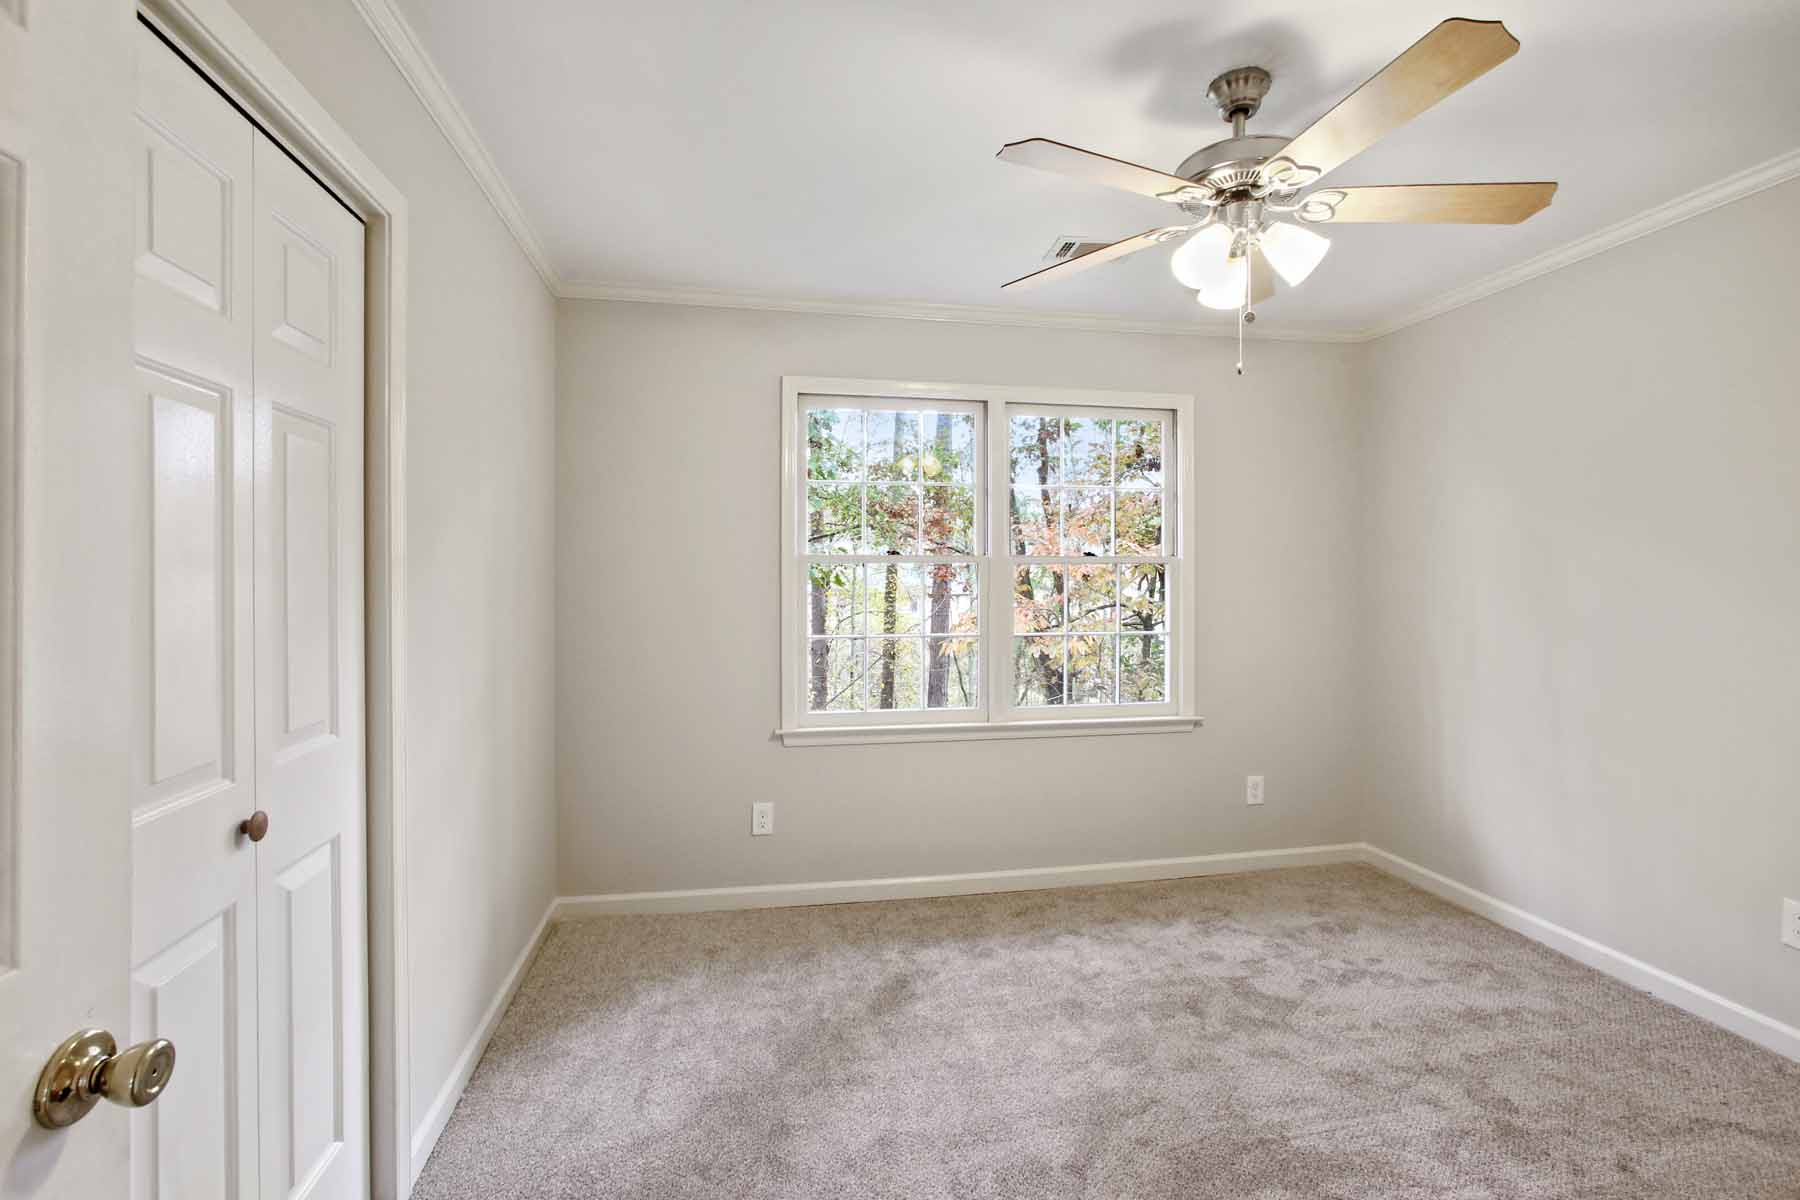 Additional photo for property listing at Gorgeous Renovated Brick Traditional nestled On A Prime Cul-de-sac Lot! 3879 Wintergreen Ct Marietta, Georgia 30062 United States